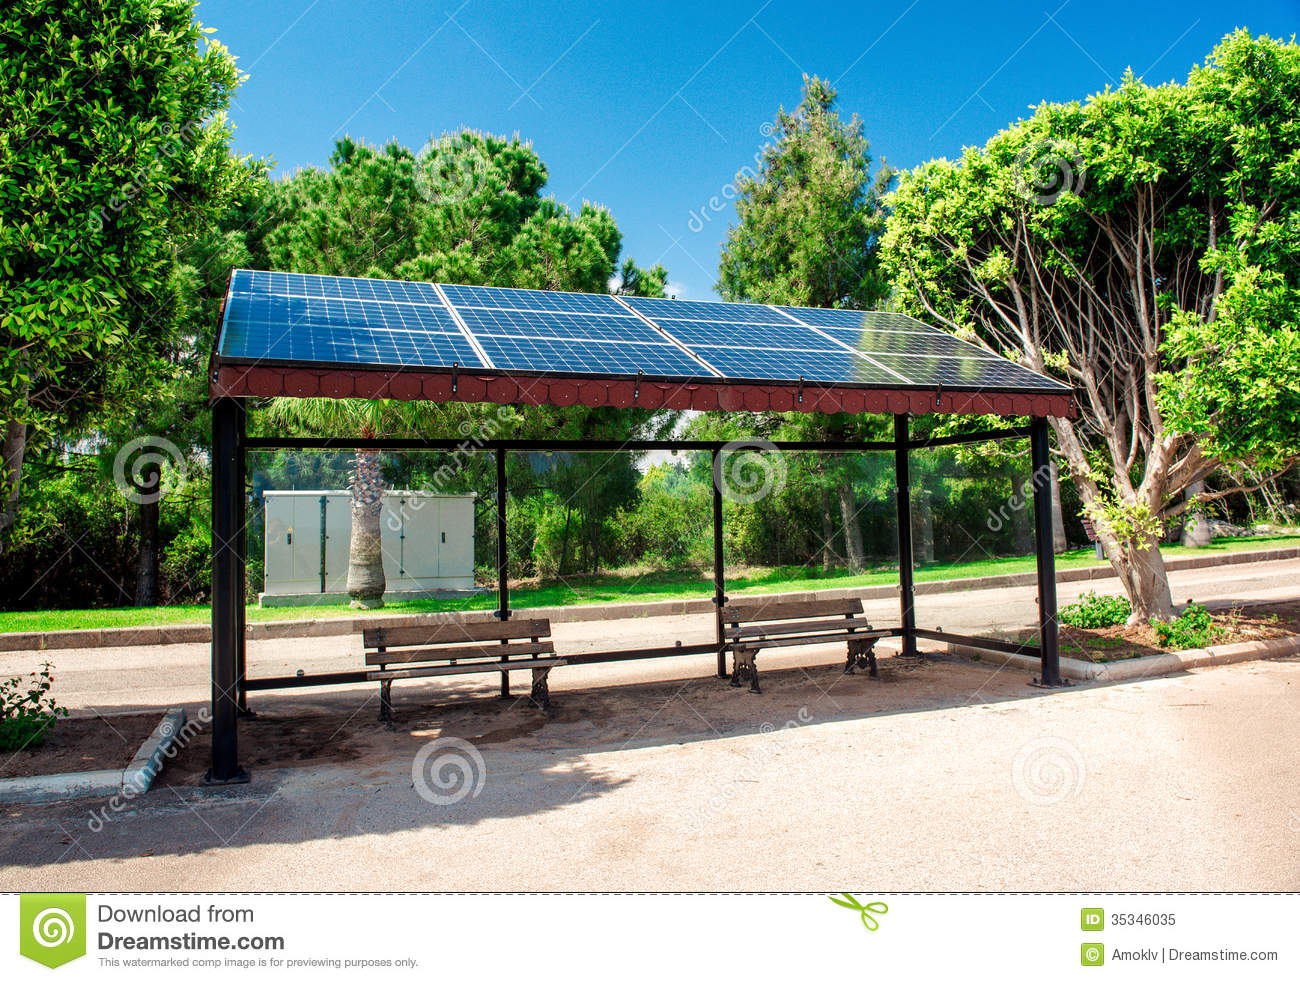 Solar Bus Stop Royalty Free Stock Photo - Image: 35346035